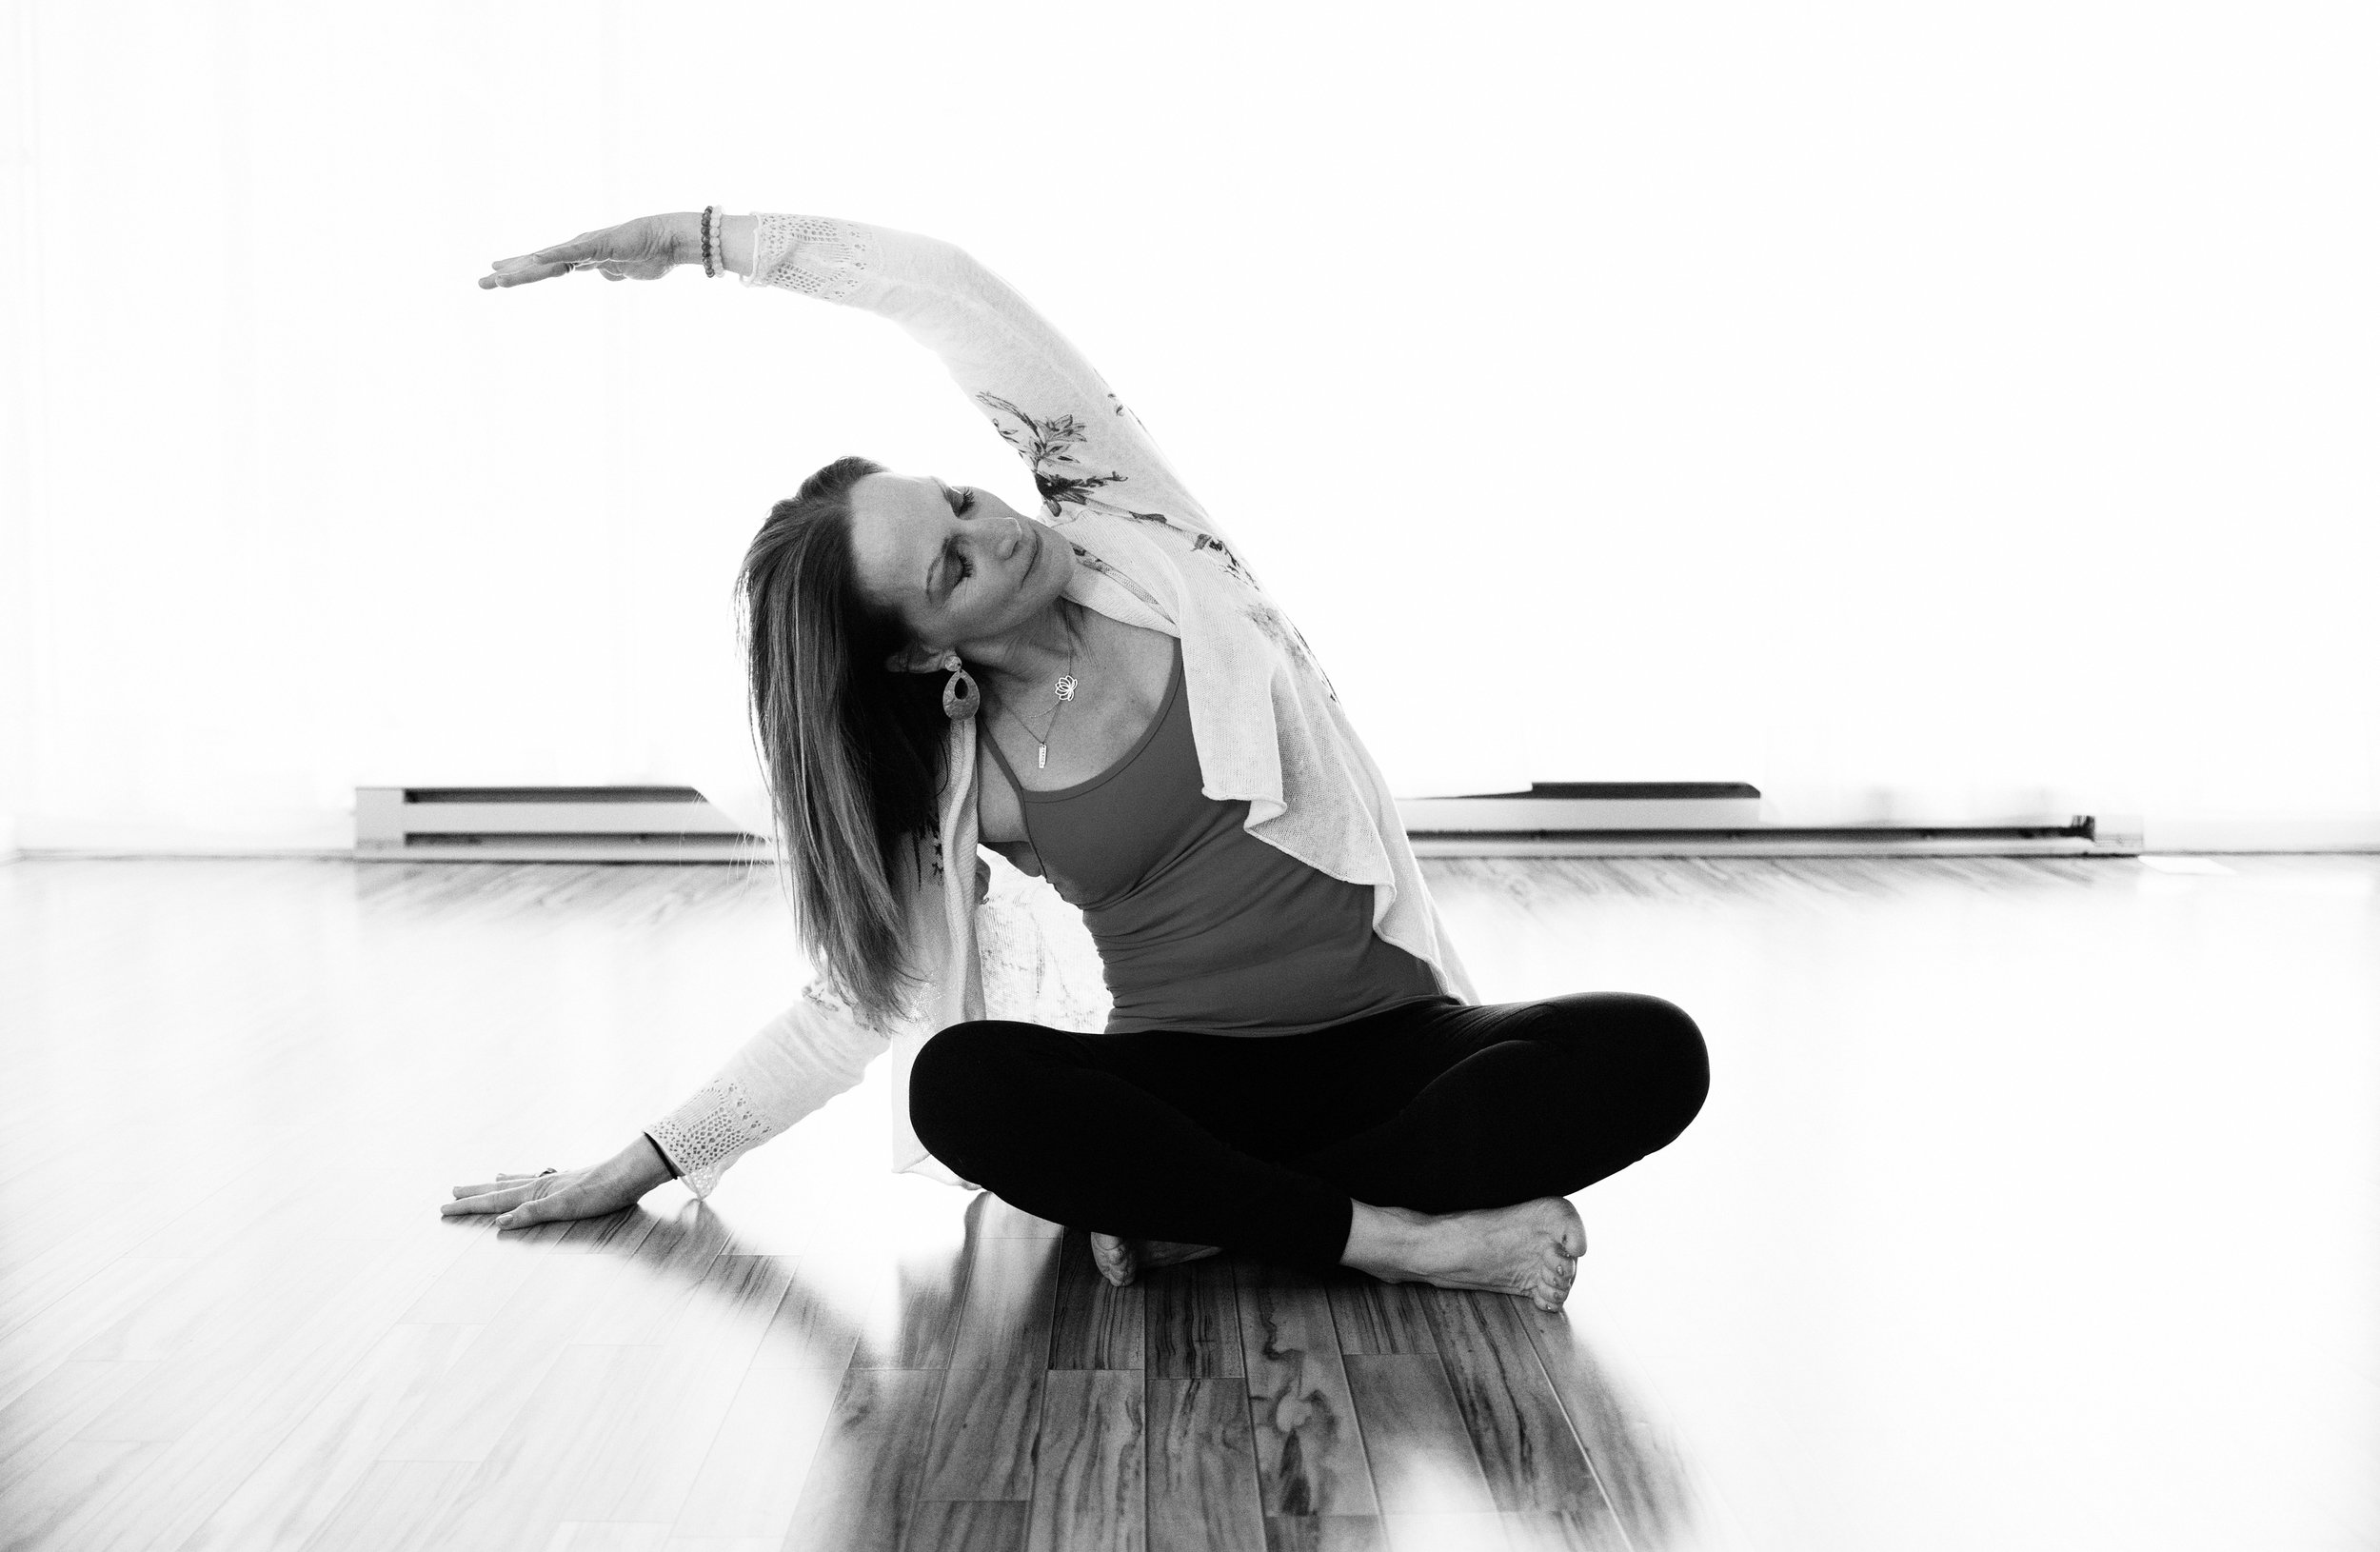 JOIN A CLASS - Ready to explore your practice? Drop into one of my weekly public classes or schedule a private session with me today